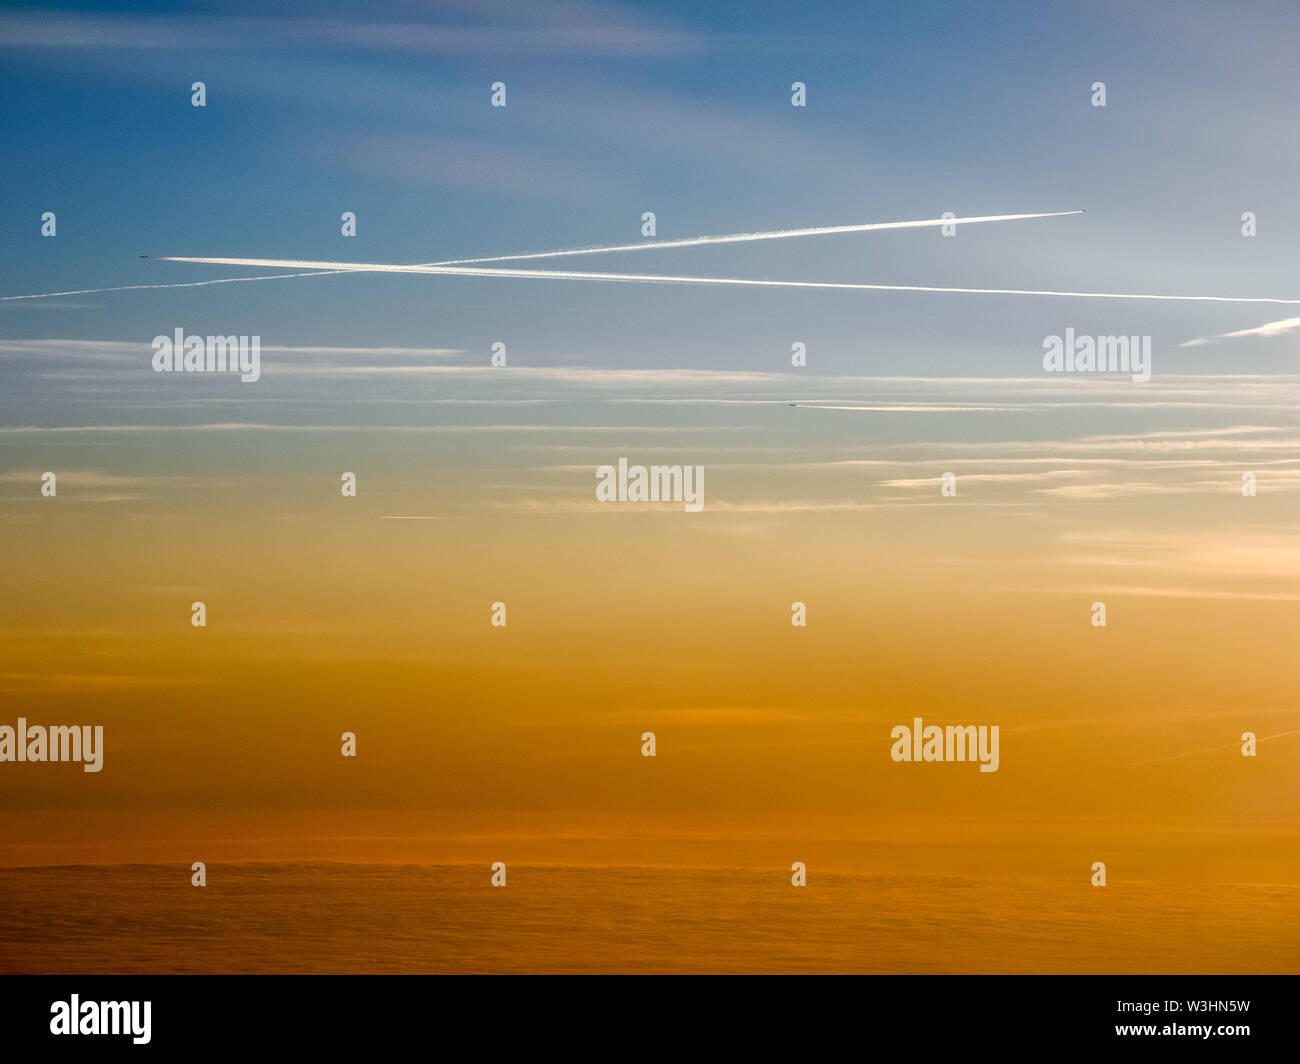 Aerial view of sunset and clouds over Europe - Stock Image